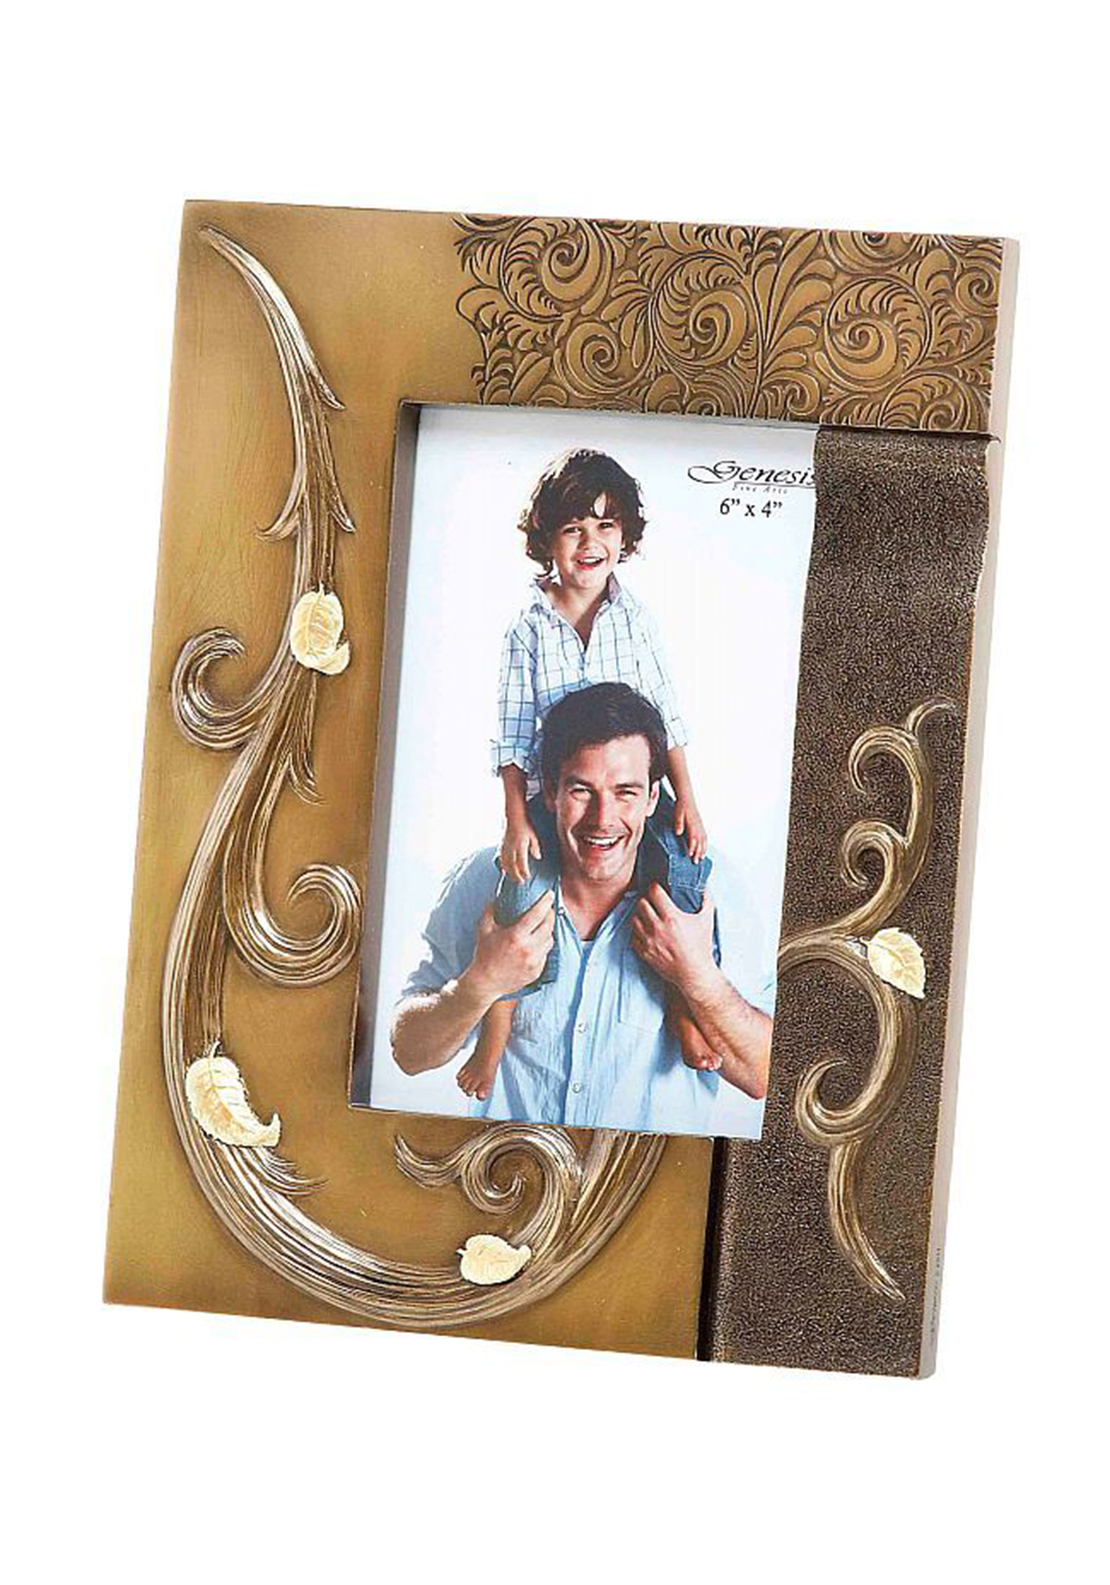 Genesis Ashling Collection Frame 6x4 inches